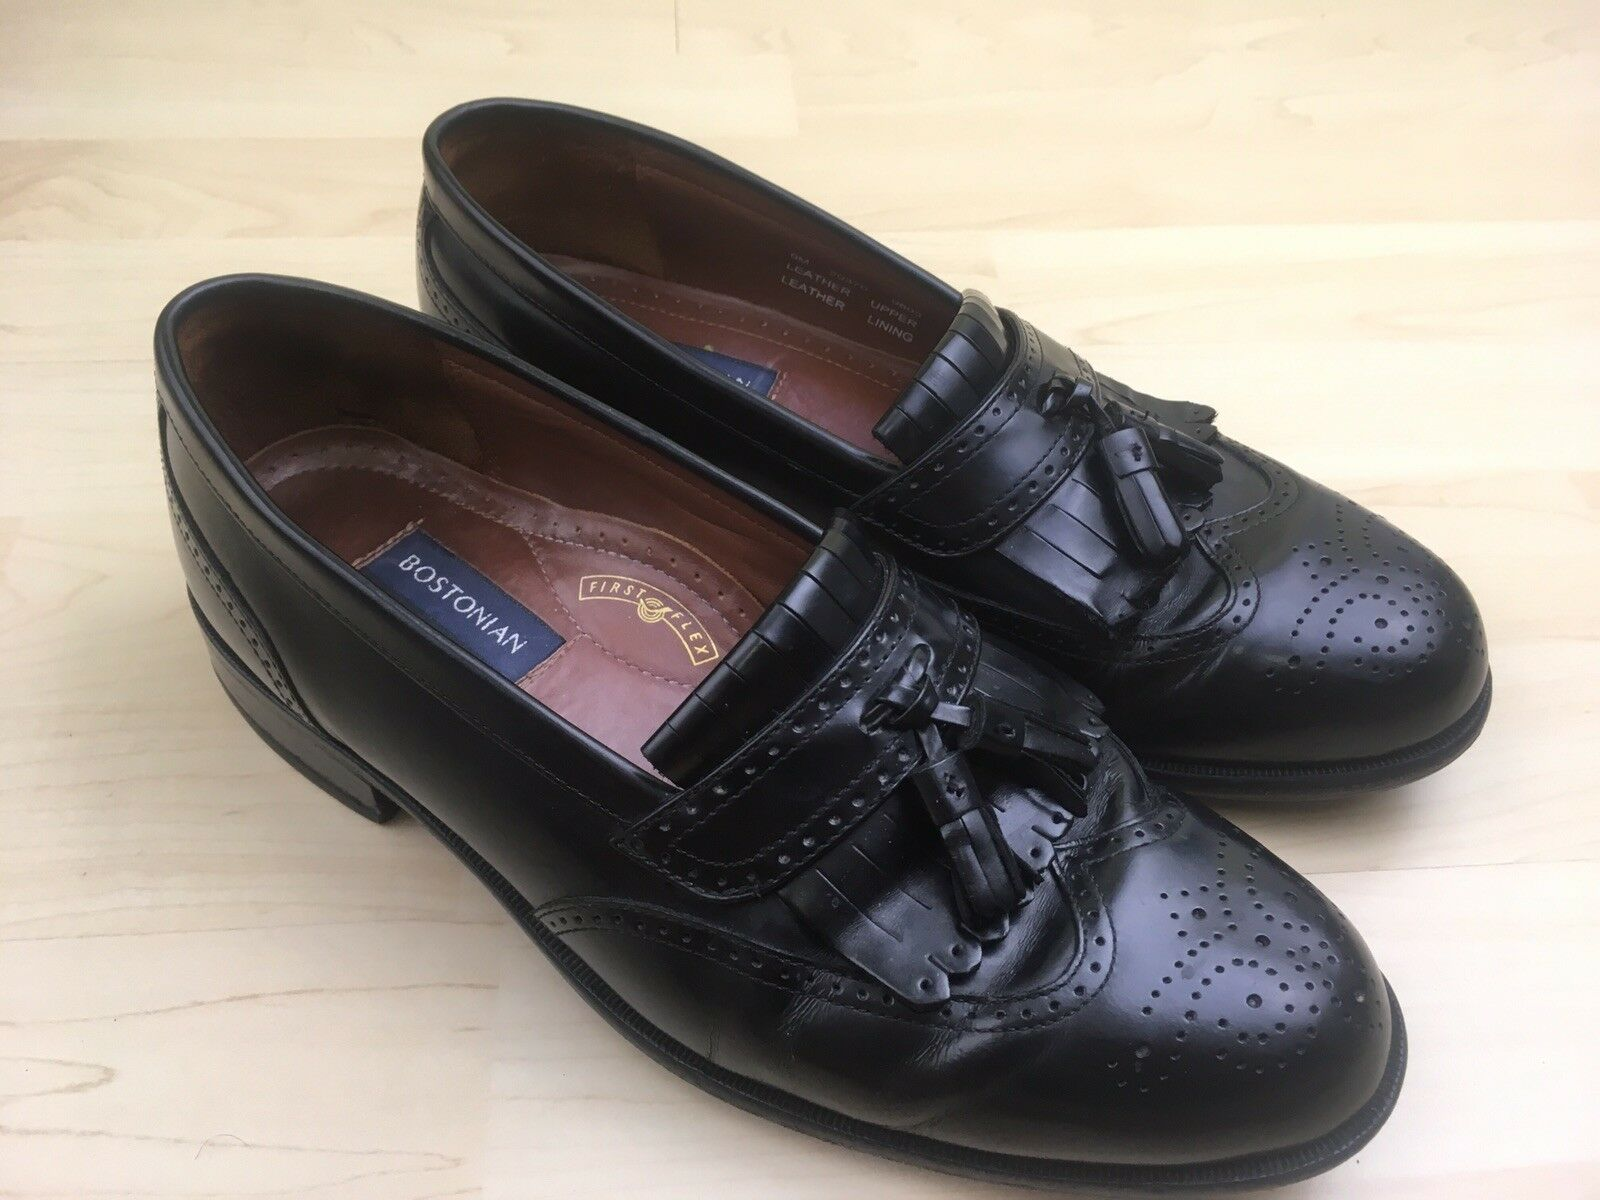 Bostonian Classic Mens Tassel Loafers Size 9M Black Leather Wingtip